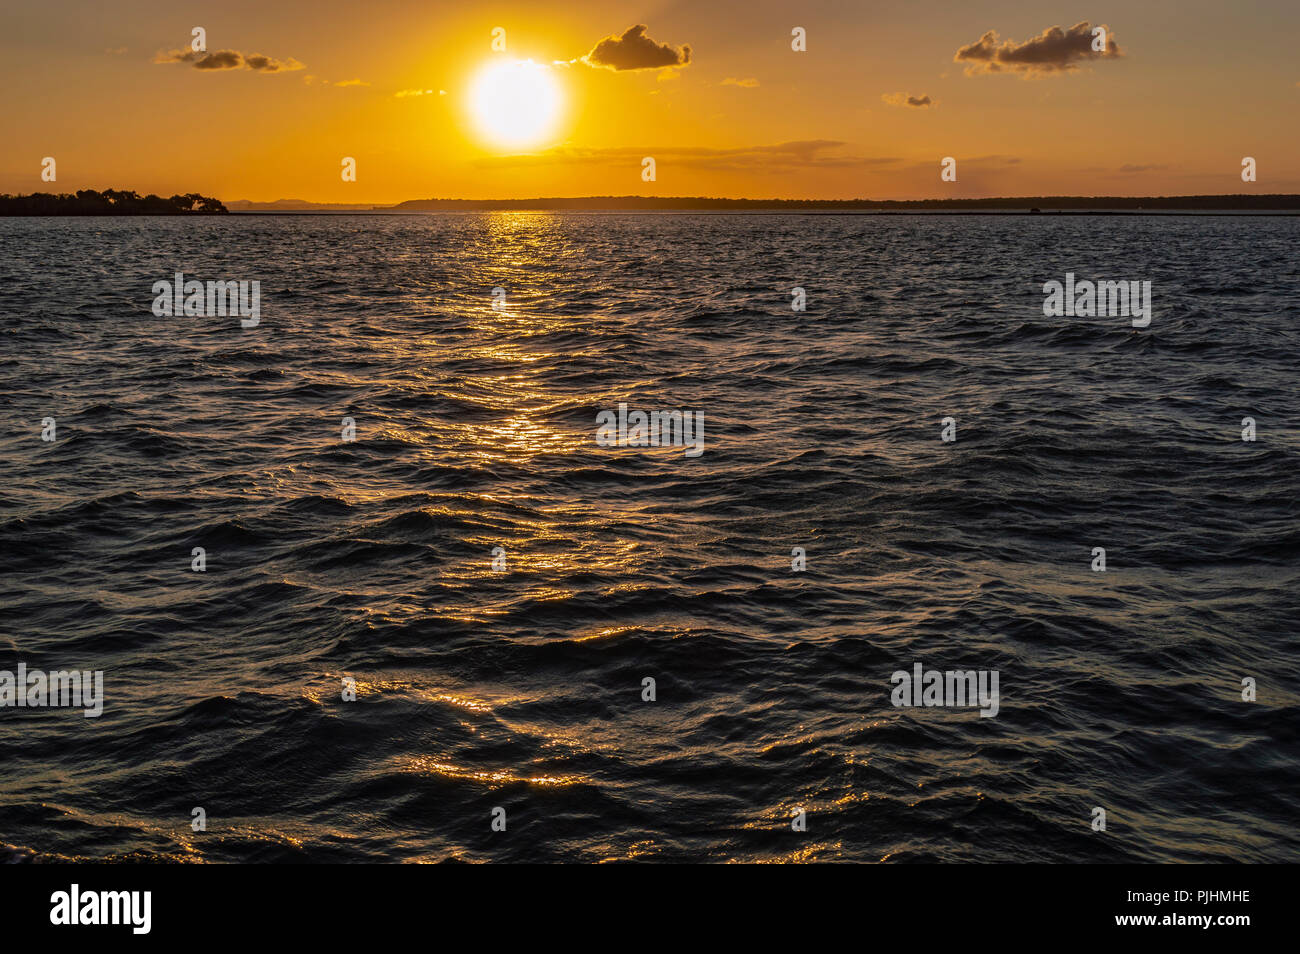 Sunset over Moreton Bay from the ferry to the mainland, Queensland, Australia Stock Photo